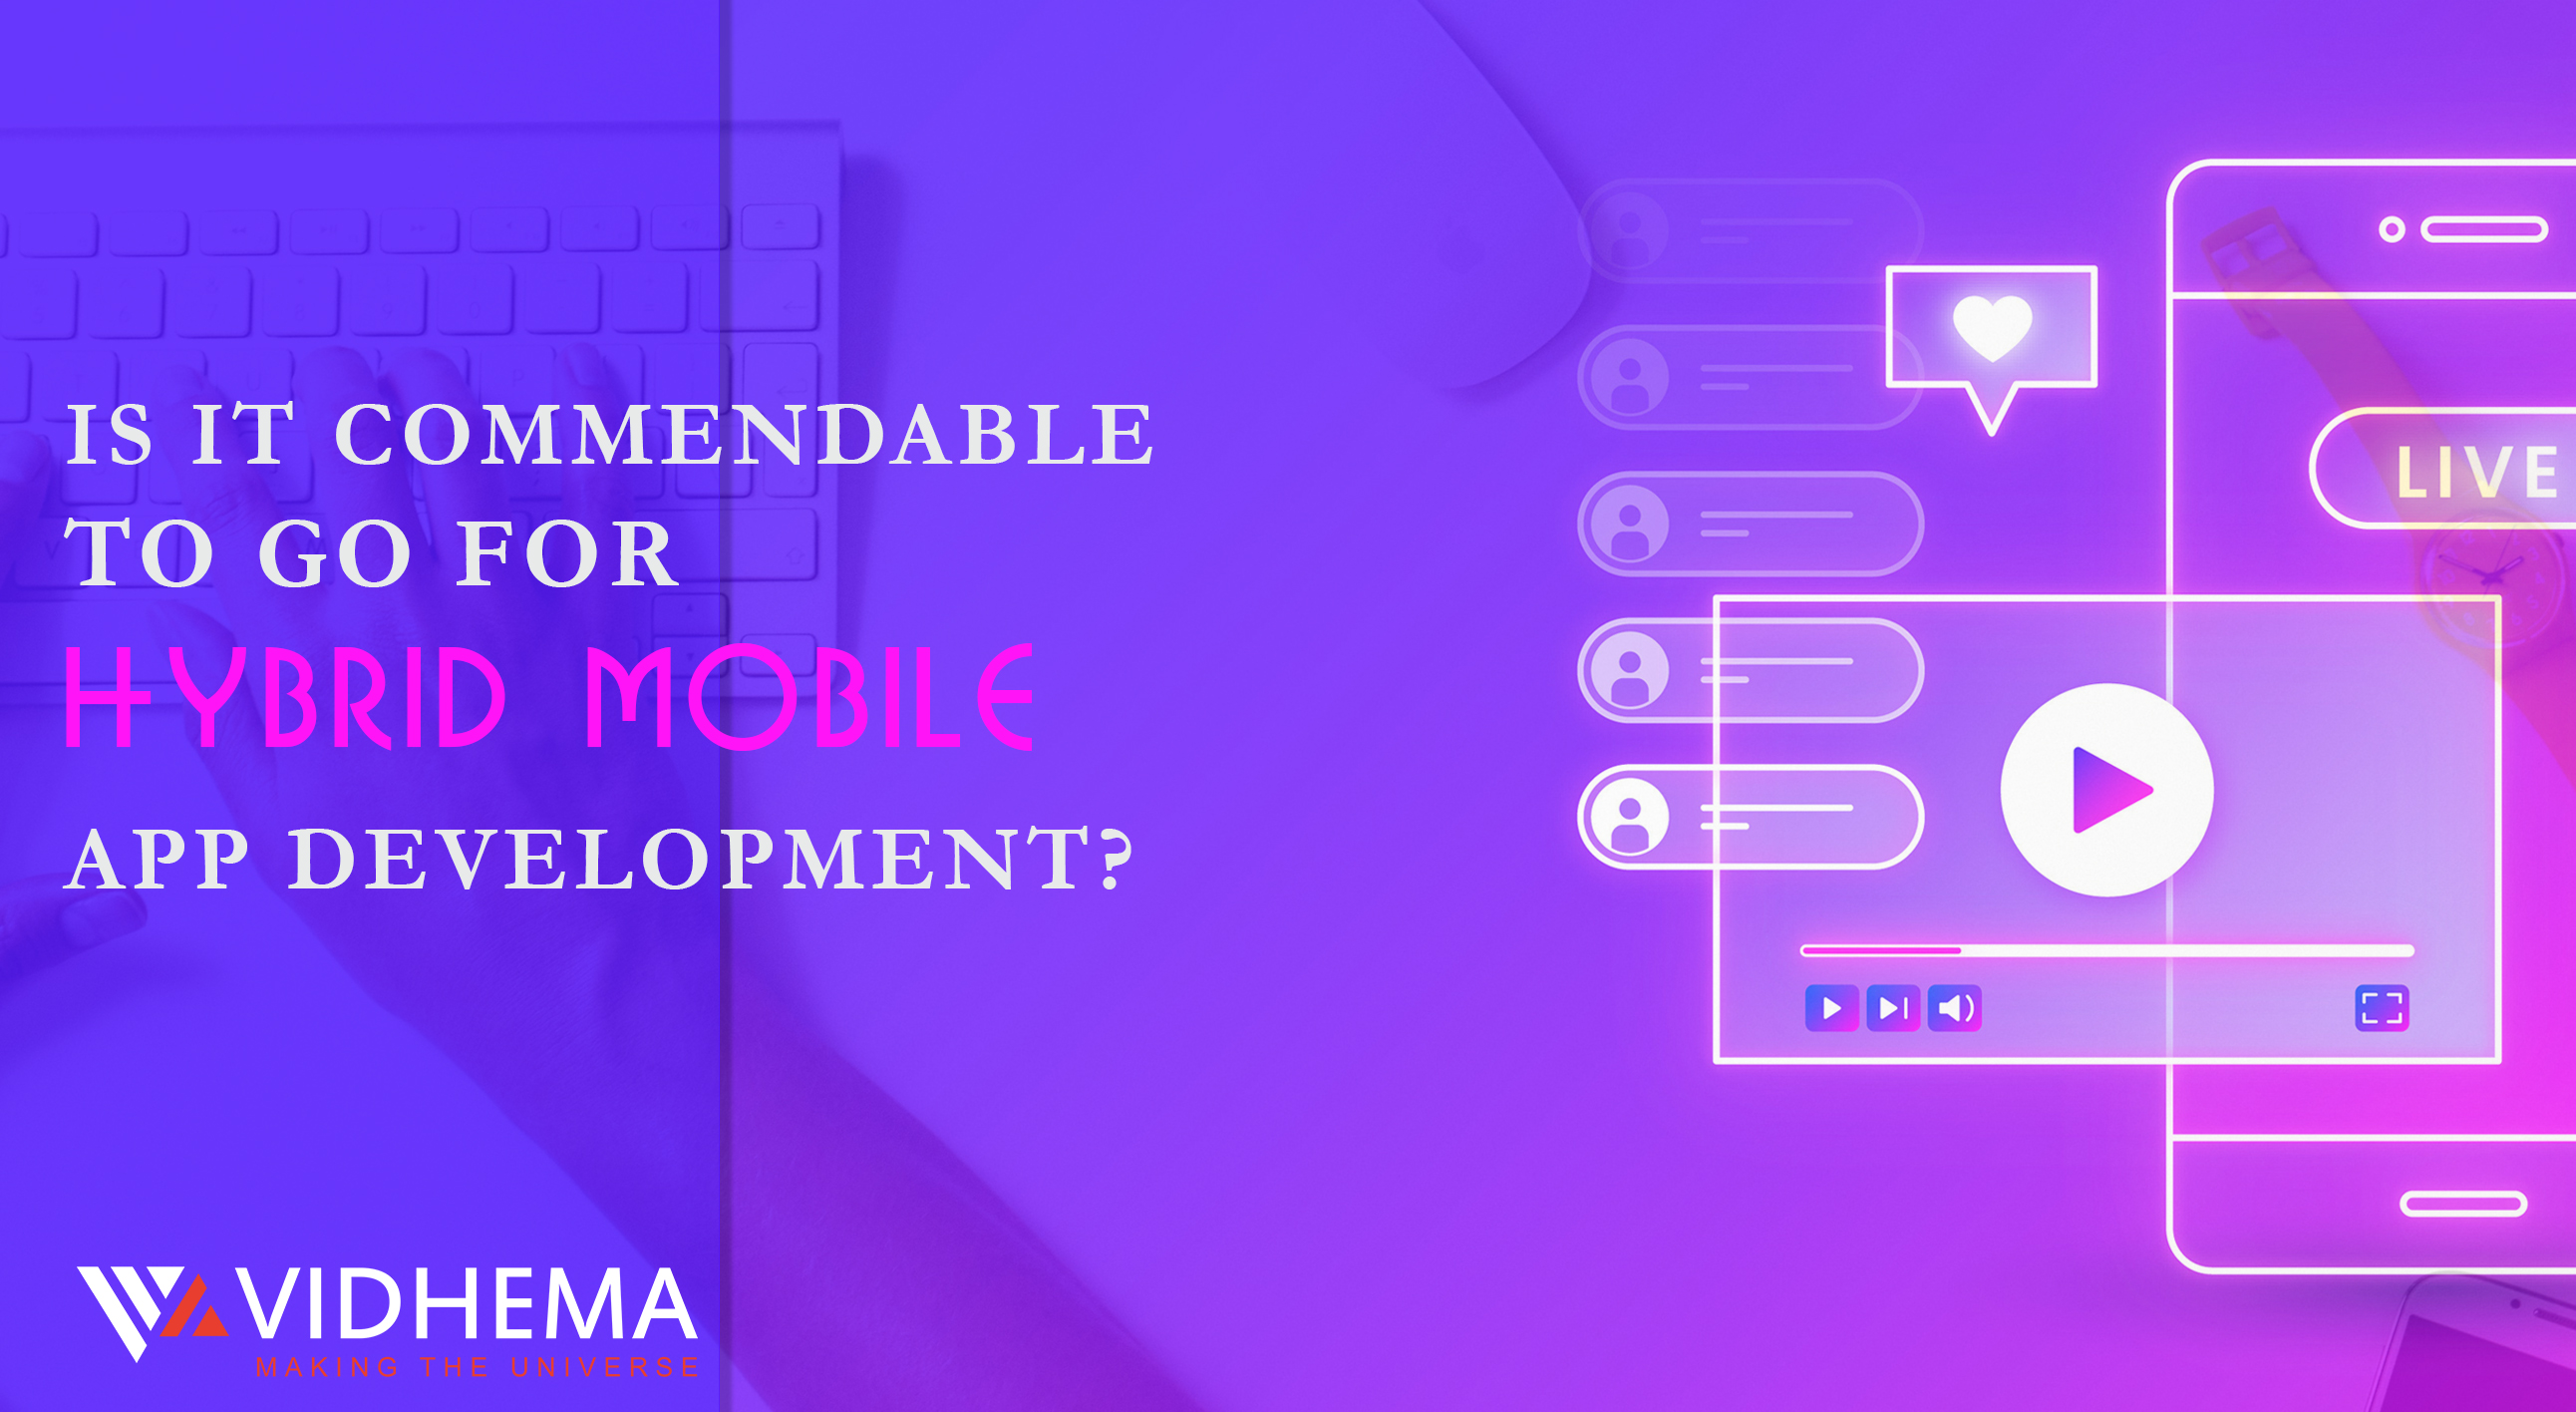 Is It Commendable To Go For Hybrid Mobile App Development